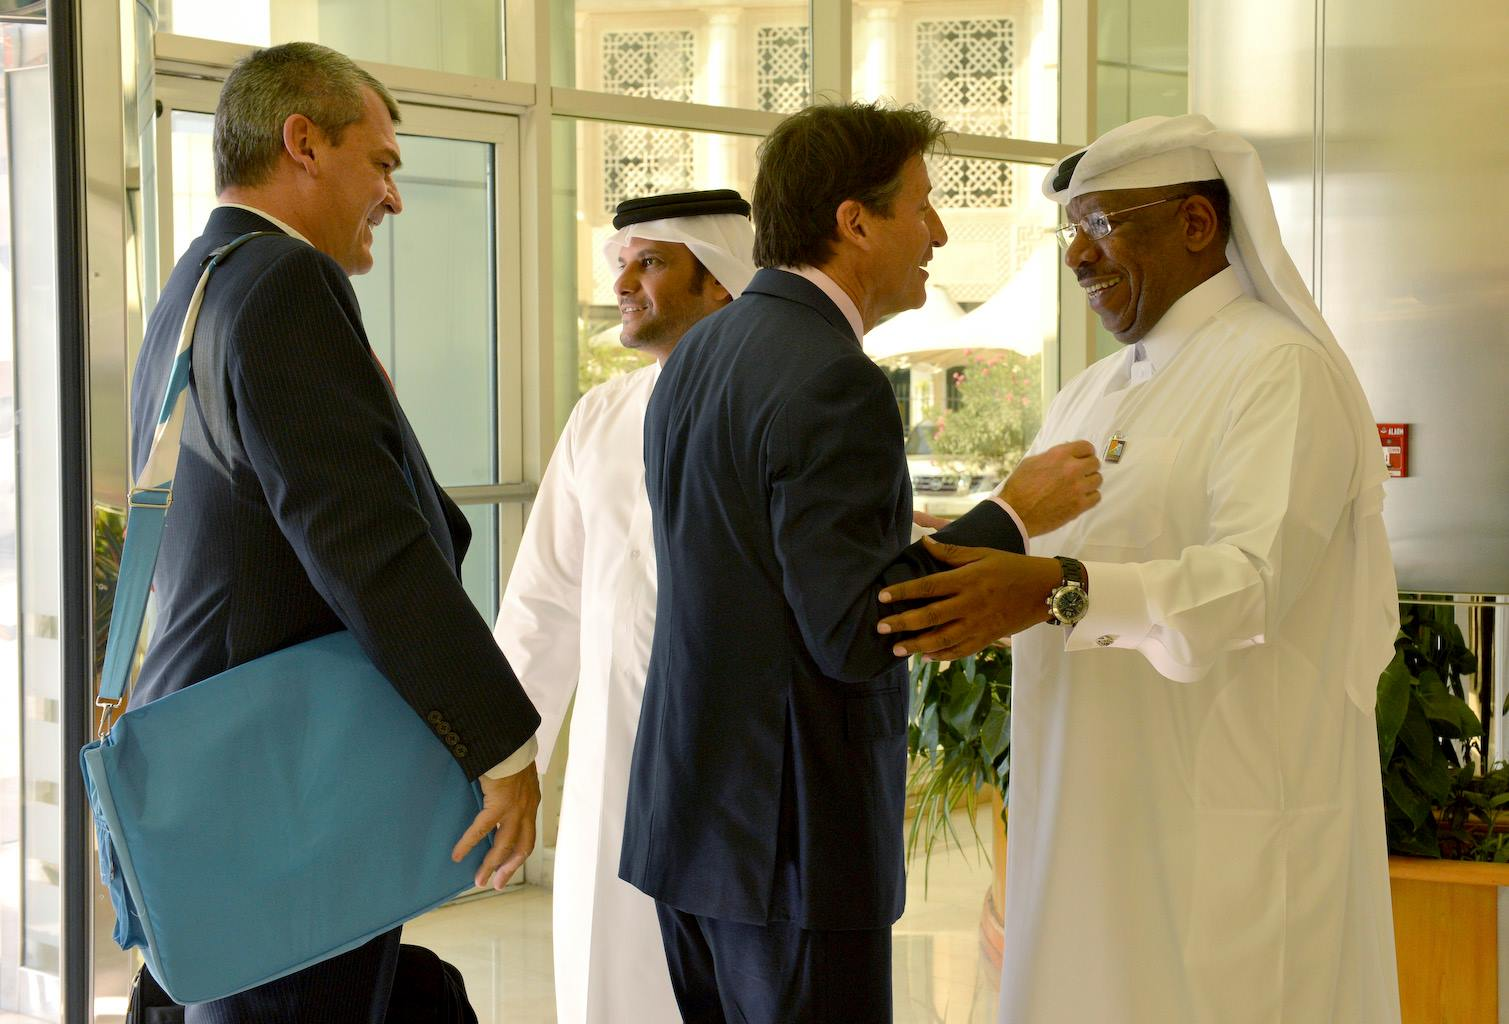 IAAF Evaluation Commission chairman Sebastian Coe praised Doha's bid to host the 2019 World Championships and the wider benefits it potentially offers the region ©Doha 2019